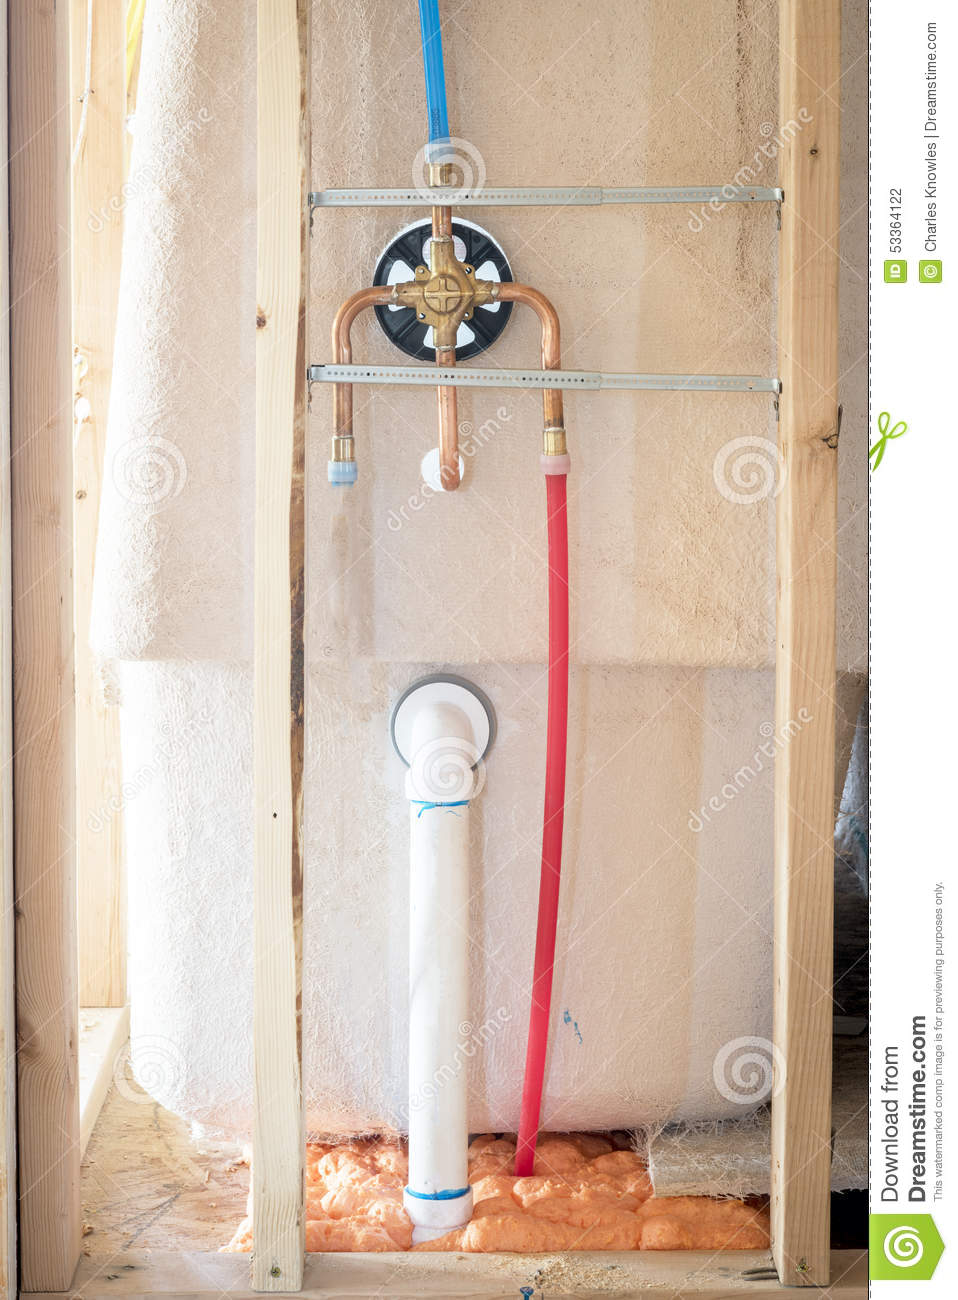 New home construction shower details stock photo image for New home plumbing